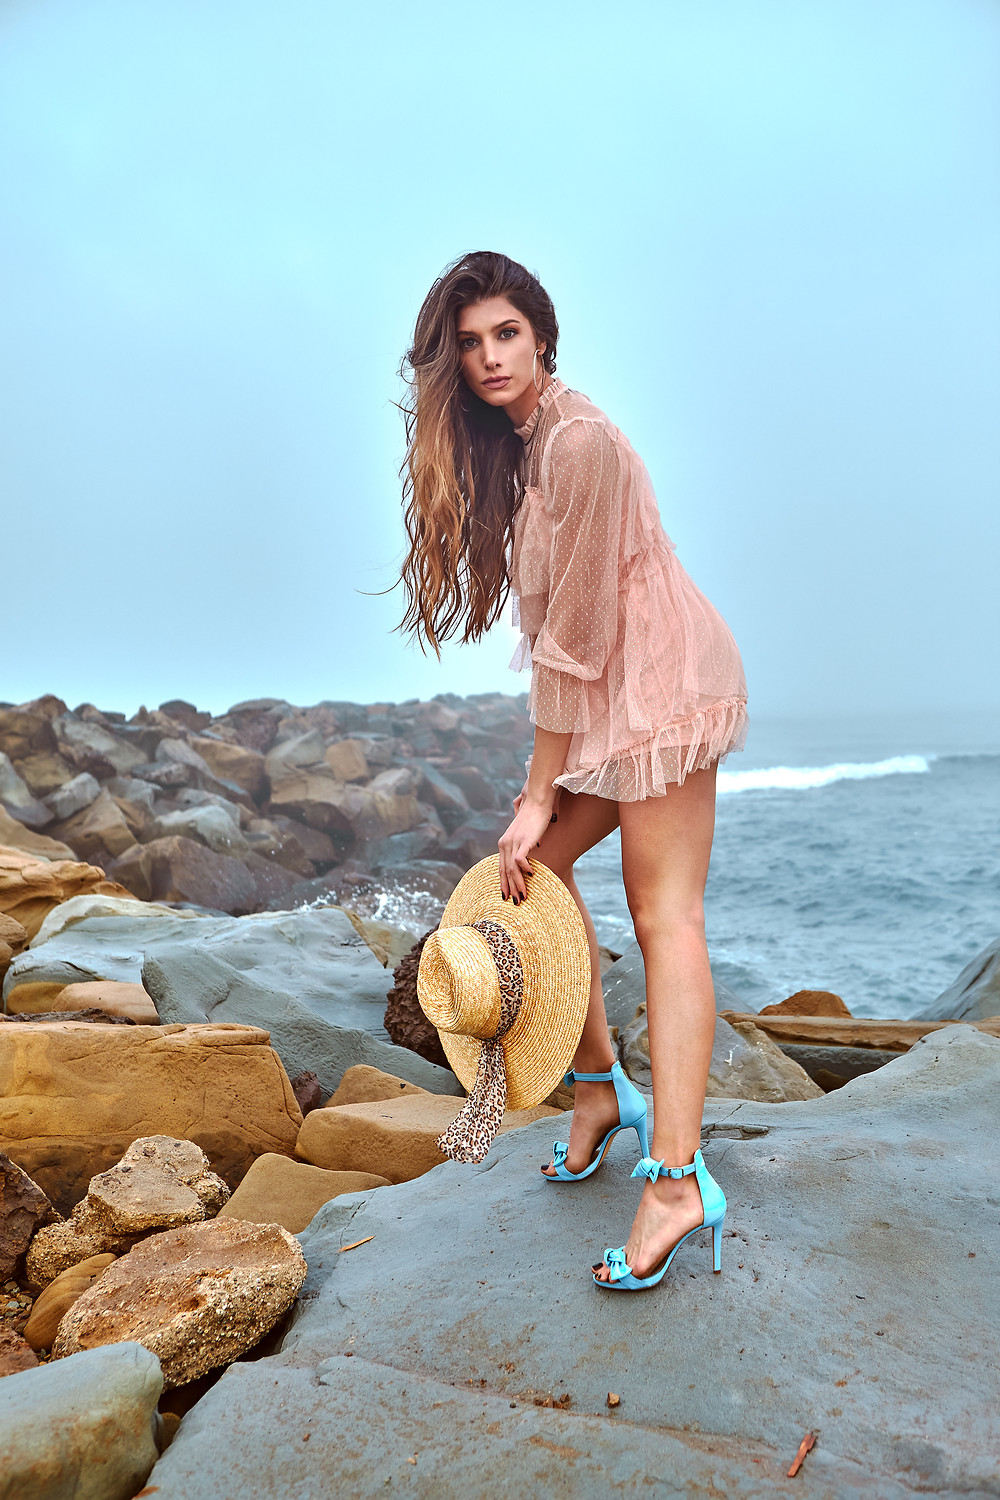 Fashion portrait of model Sofija Stojkovic at Aston Models in Los Angeles, California wearing a pink beach dress, baby blue heels, and a straw hat with a leopard sash.